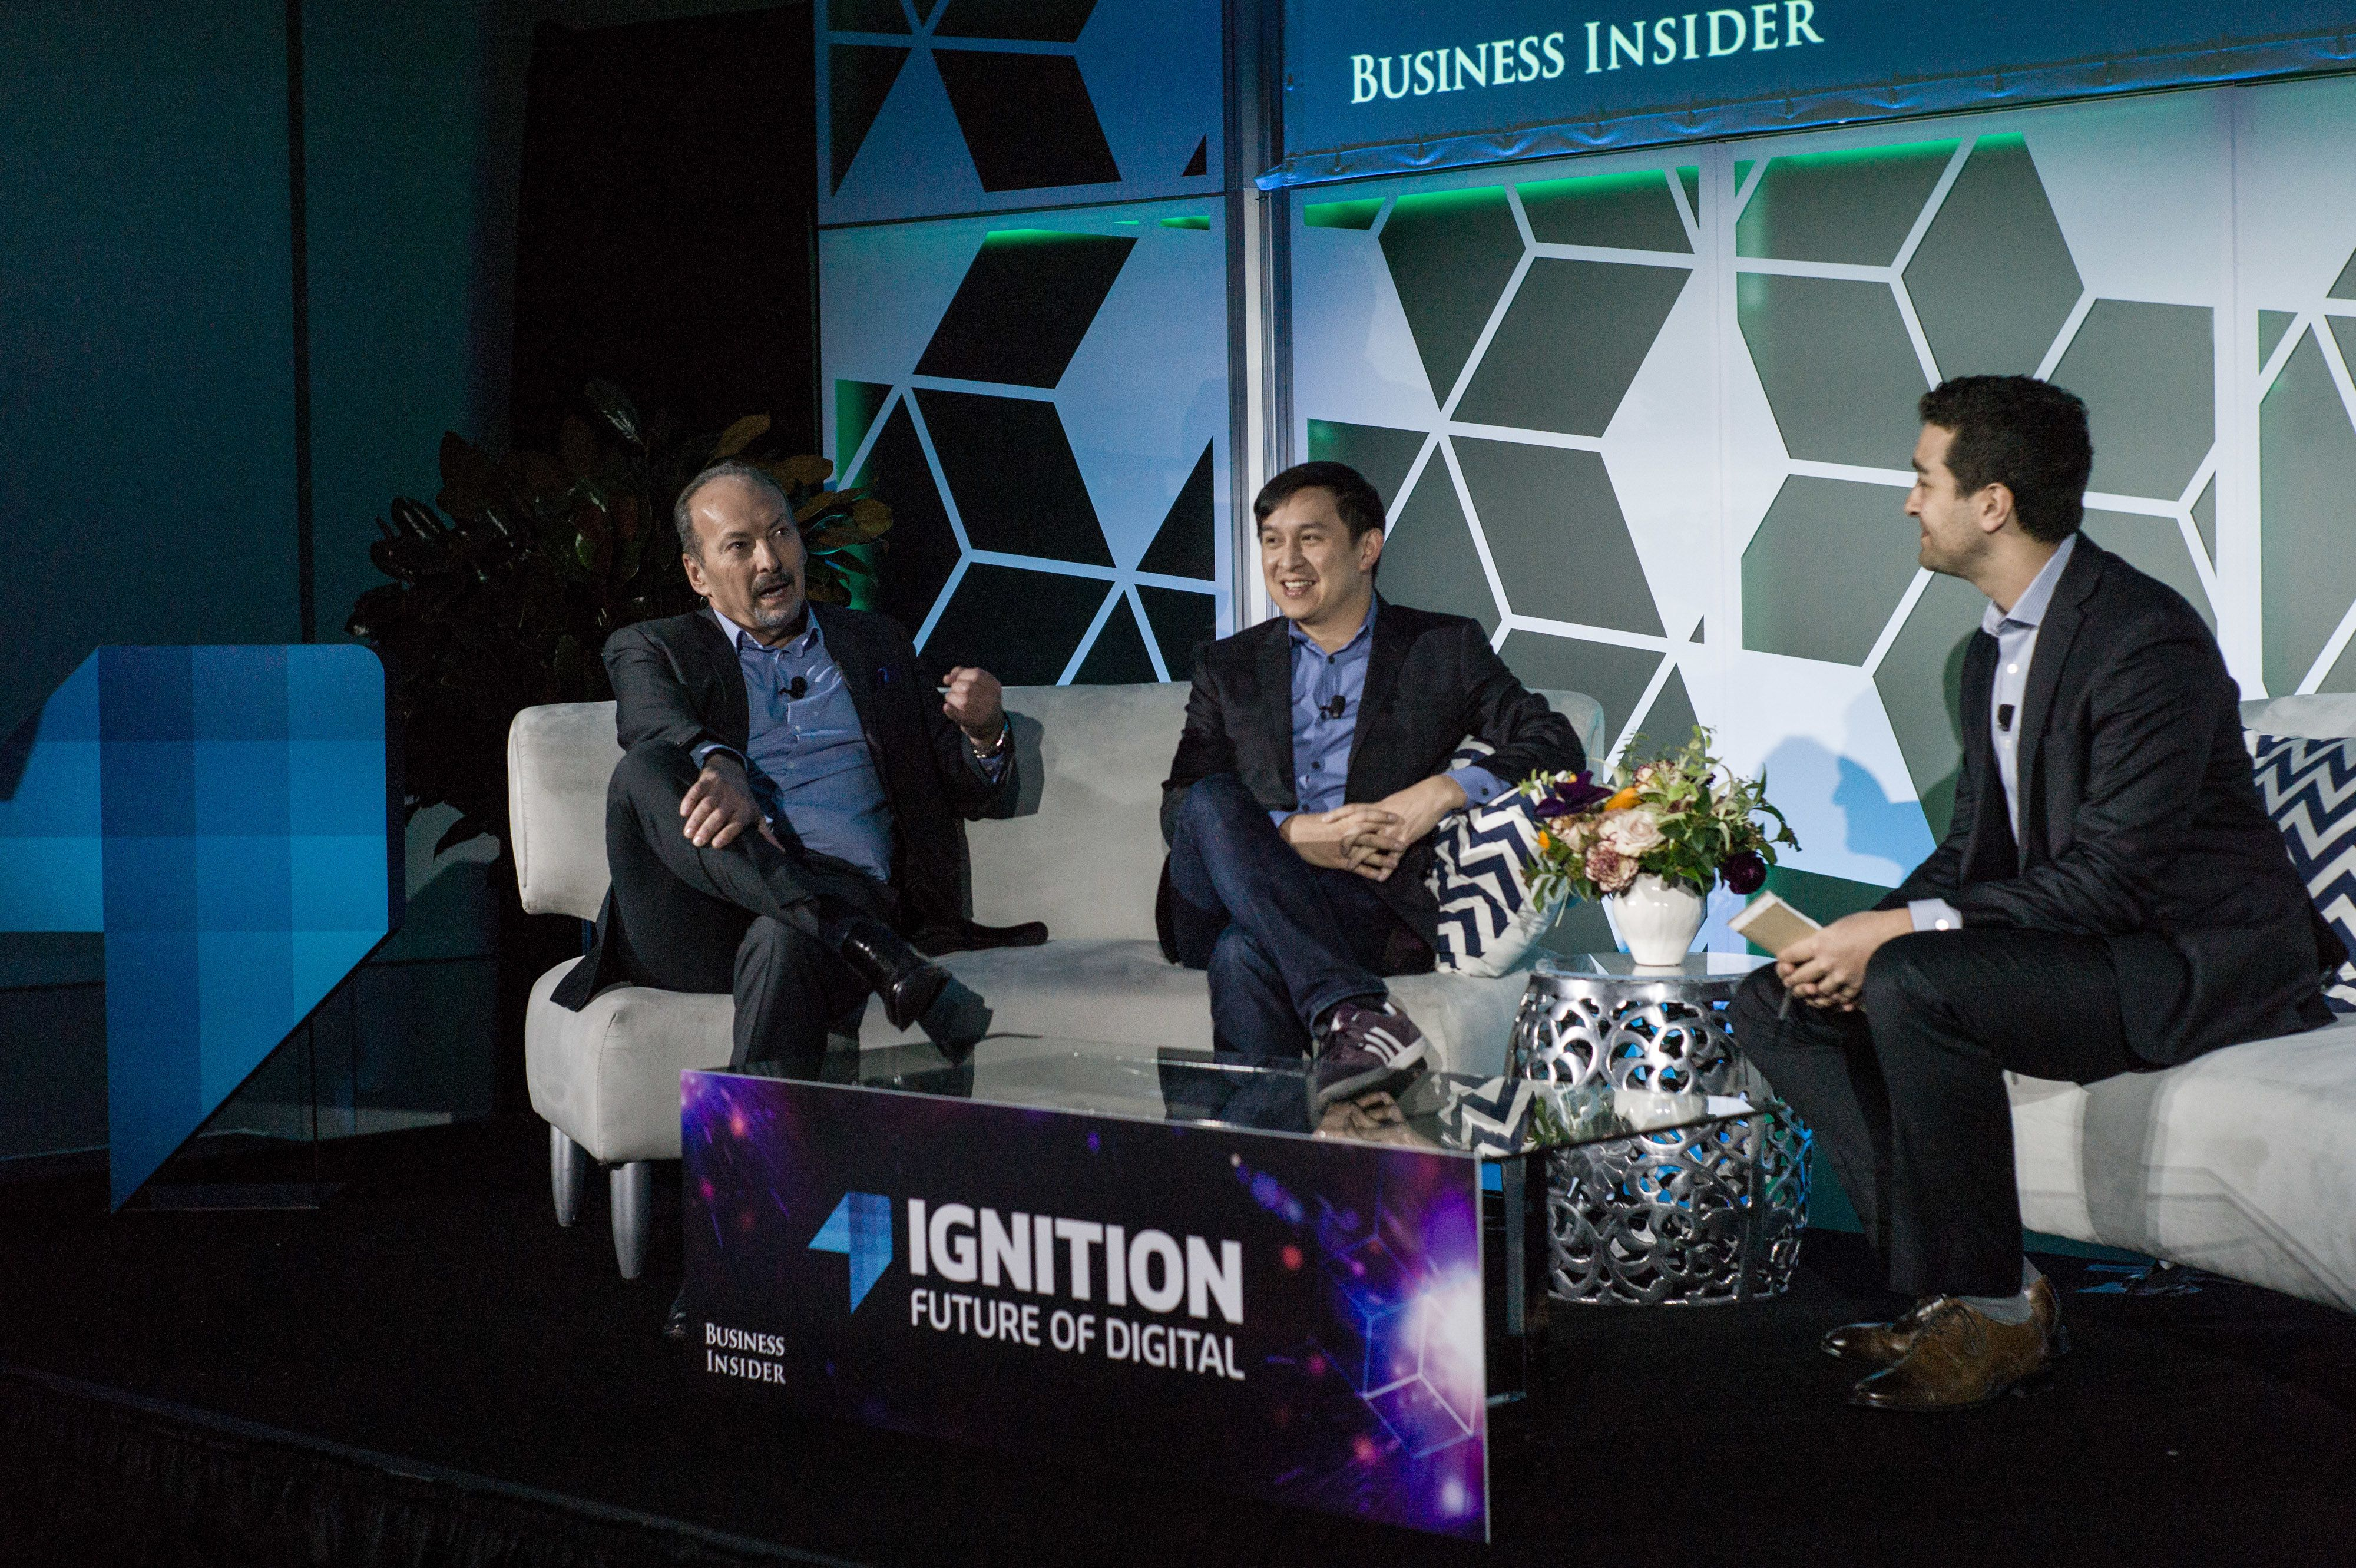 Peter Moore, chief competition officer of Electronic Arts Inc. (EA), left, and Kevin Lin, chief operating officer of TwitchTV, participate in a panel discussion during the IGNITION: Future Of Digital Conference in New York, U.S., on Tuesday, Dec. 6, 2016. The IGNITION conference brings together the best minds in media and technology to share what they see on the horizon. Photographer: Misha Friedman/Bloomberg via Getty Images